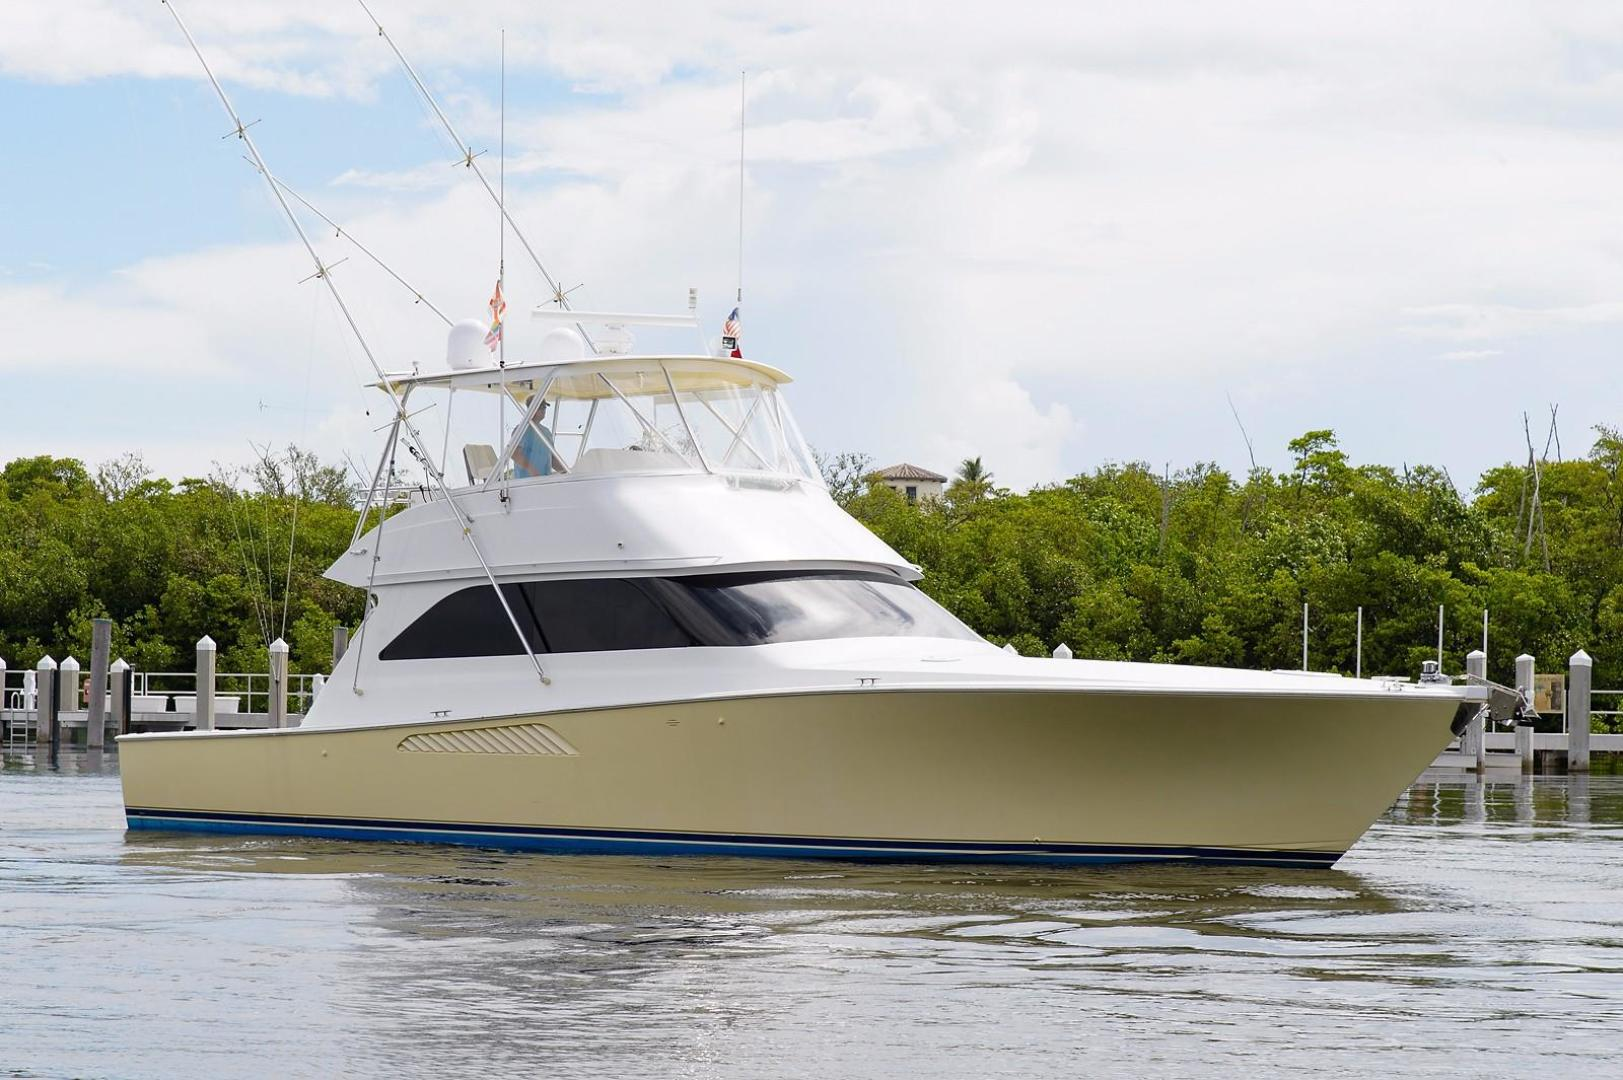 Viking-52 Convertible 2002-Double Eagle Boca Raton-Florida-United States-458702 | Thumbnail